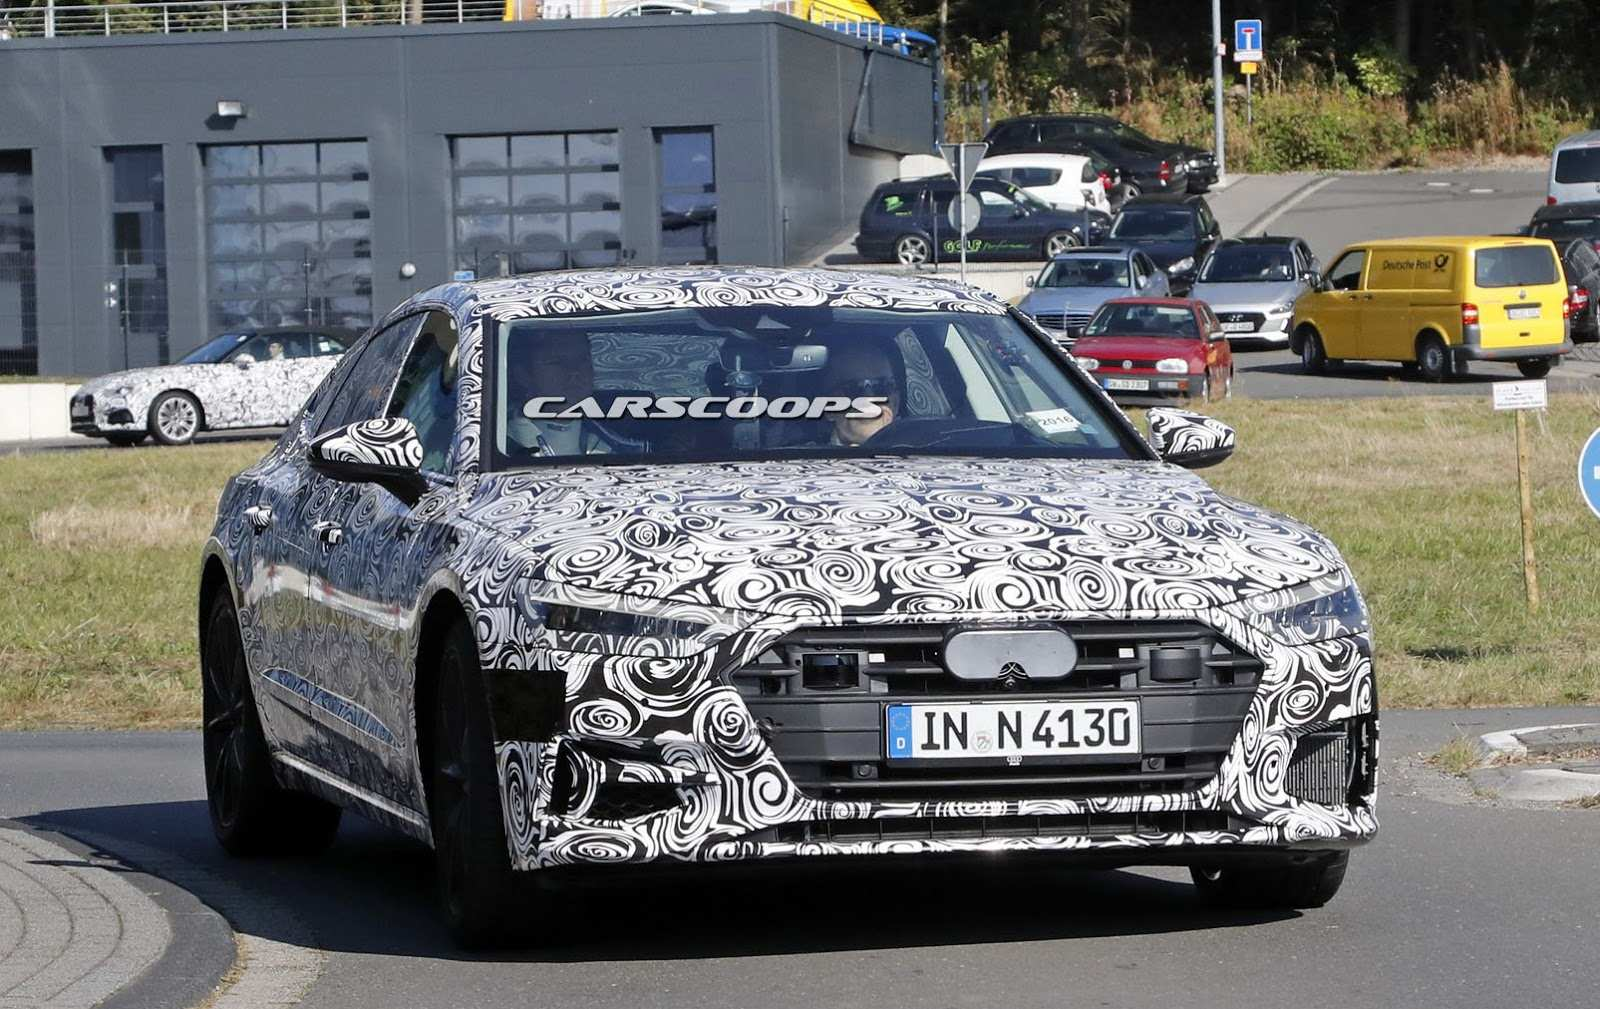 74 Great 2019 Audi A7 Frankfurt Auto Show Photos for 2019 Audi A7 Frankfurt Auto Show